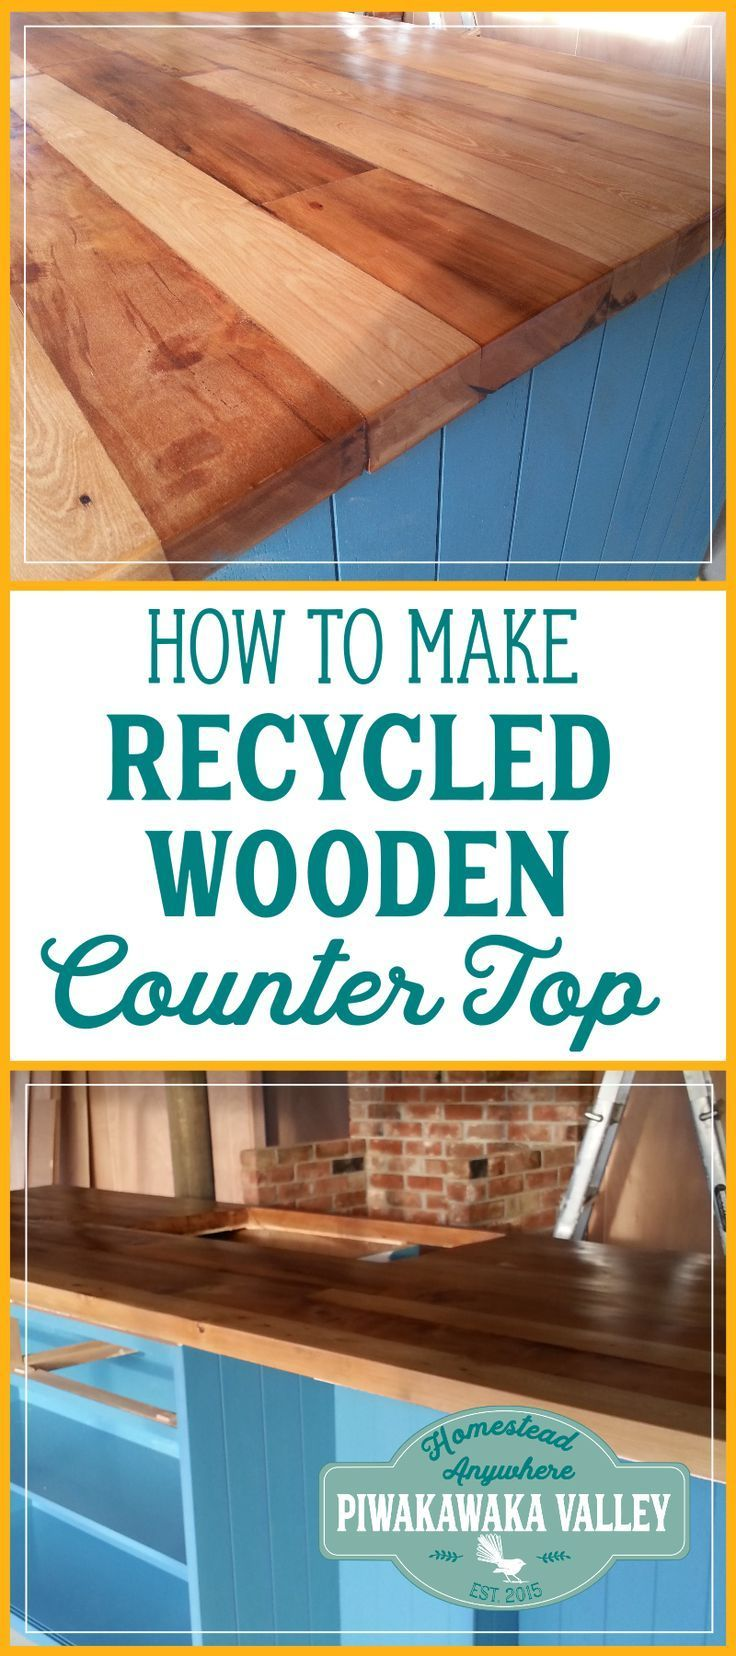 DIY Recycled Wooden Countertop | Pinterest | Kitchen benches ...